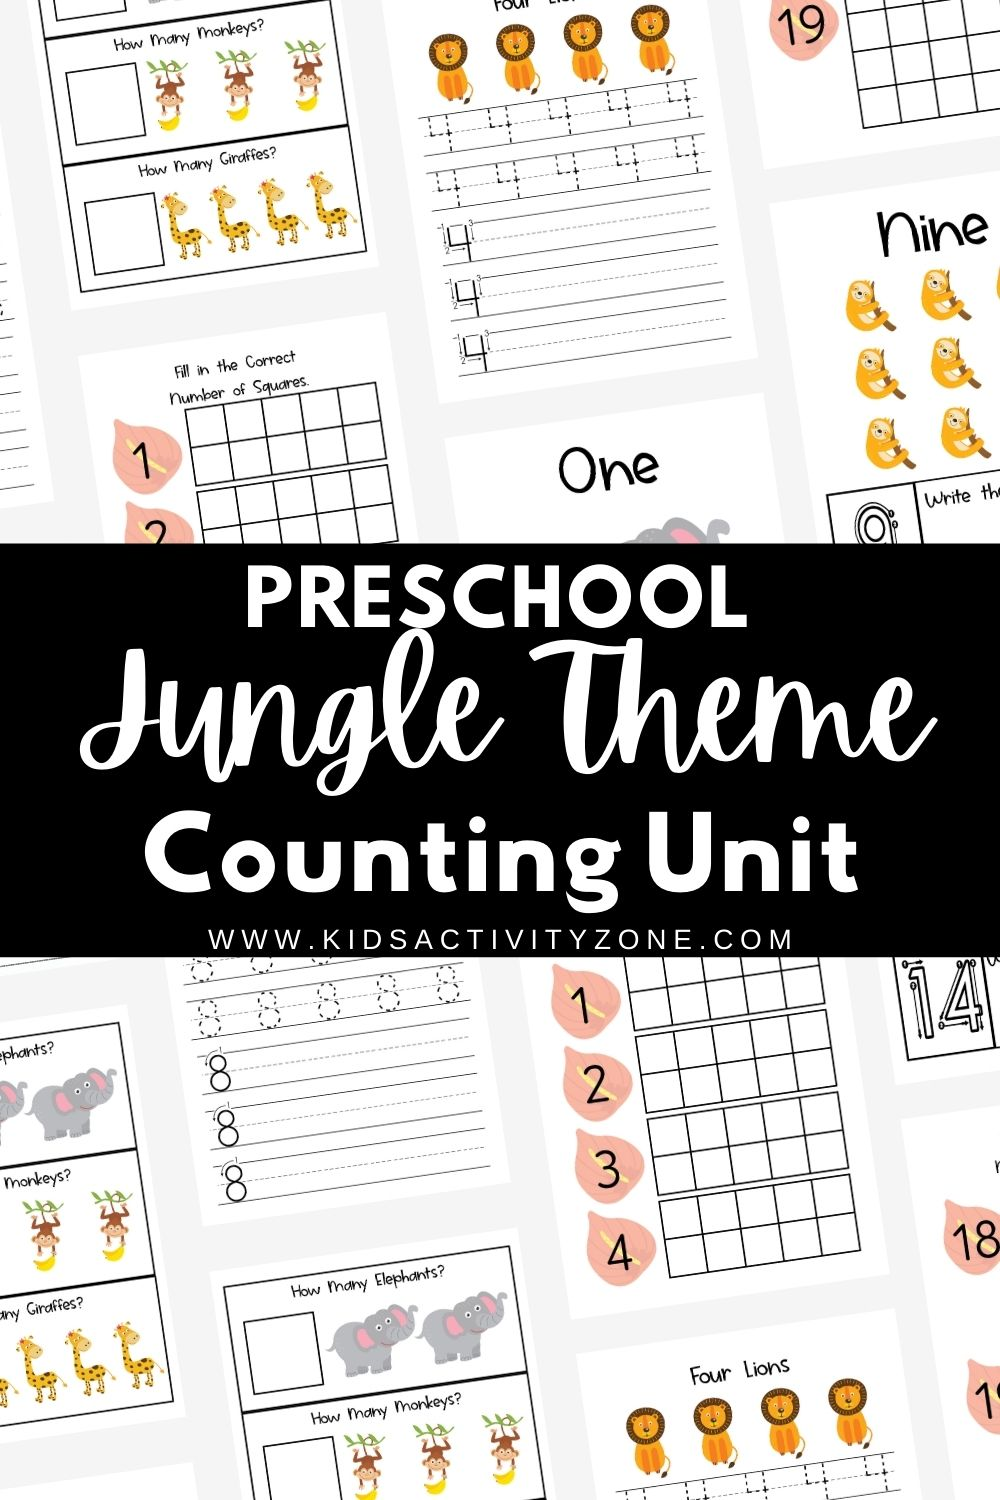 Looking for a fun, engaging preschool unit? If your child loves animals they will enjoy this preschool unit with jungle animals. Each day has jungle theme activities, books and more! Plus, a free printable counting book with a jungle theme to work on each day.